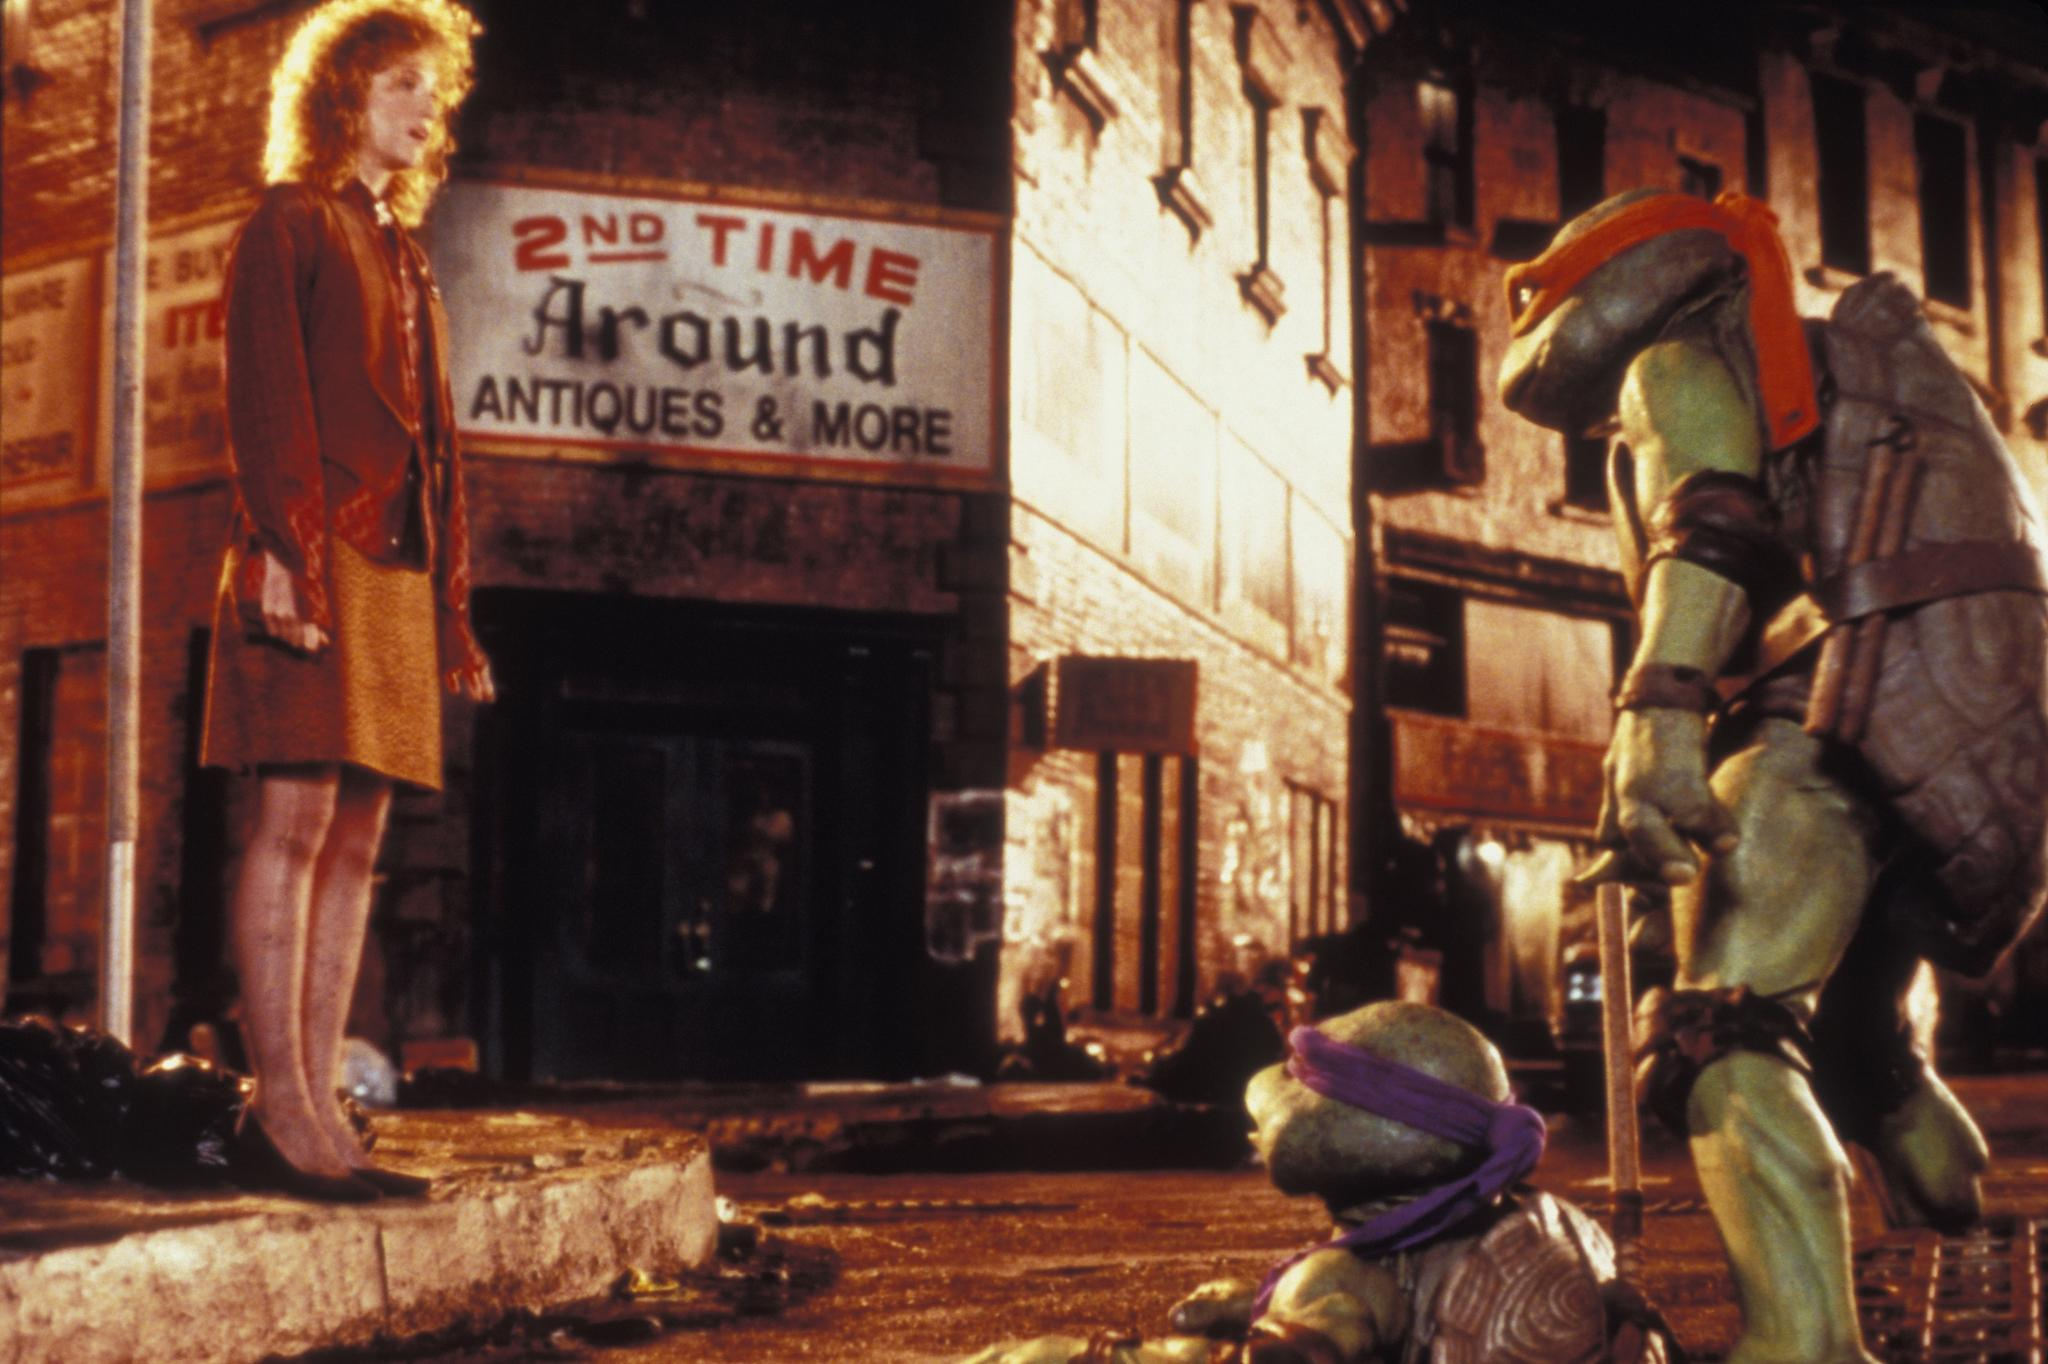 WTF: Teenage Mutant Ninja Turtles (1990) – 1,2,3 WTF ...